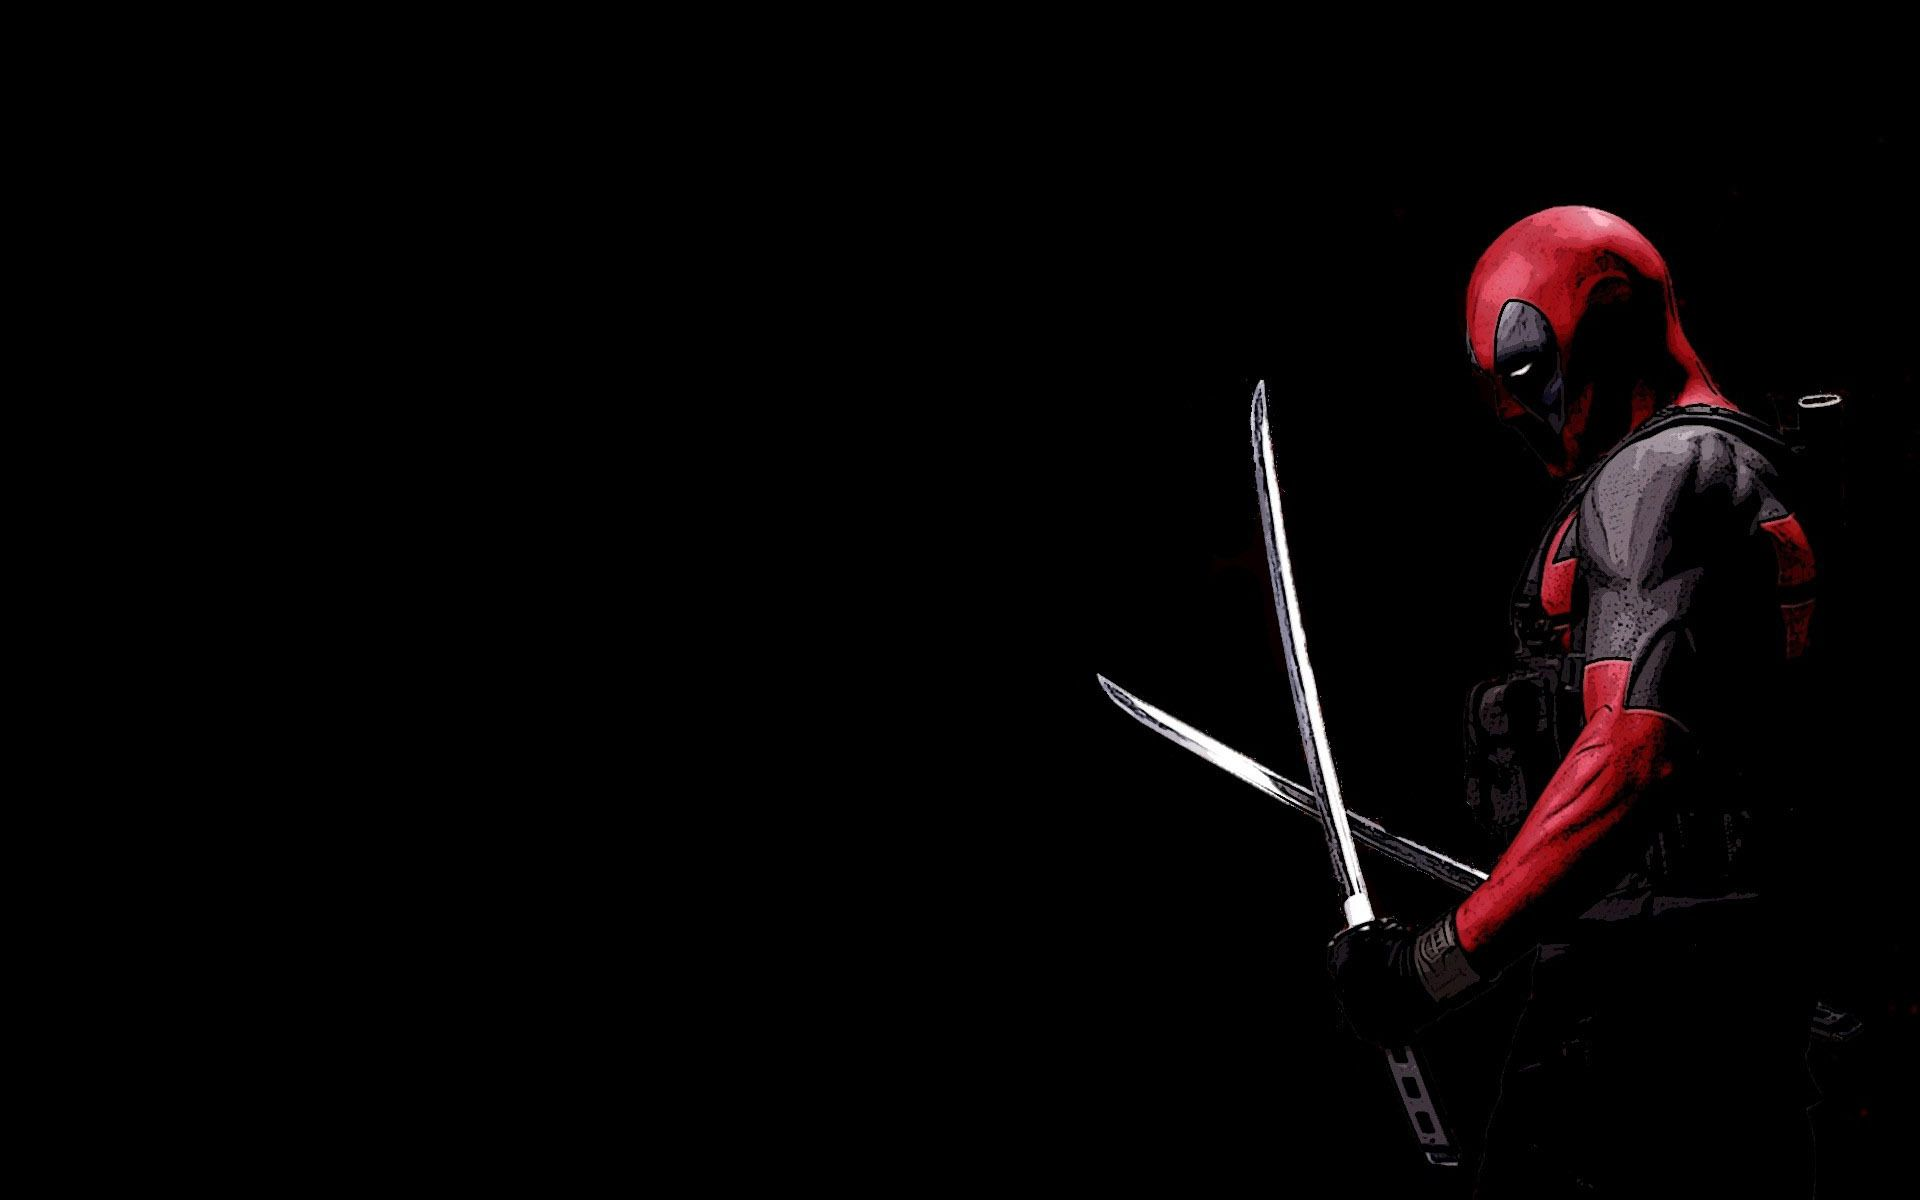 deadpool desktop wallpaper